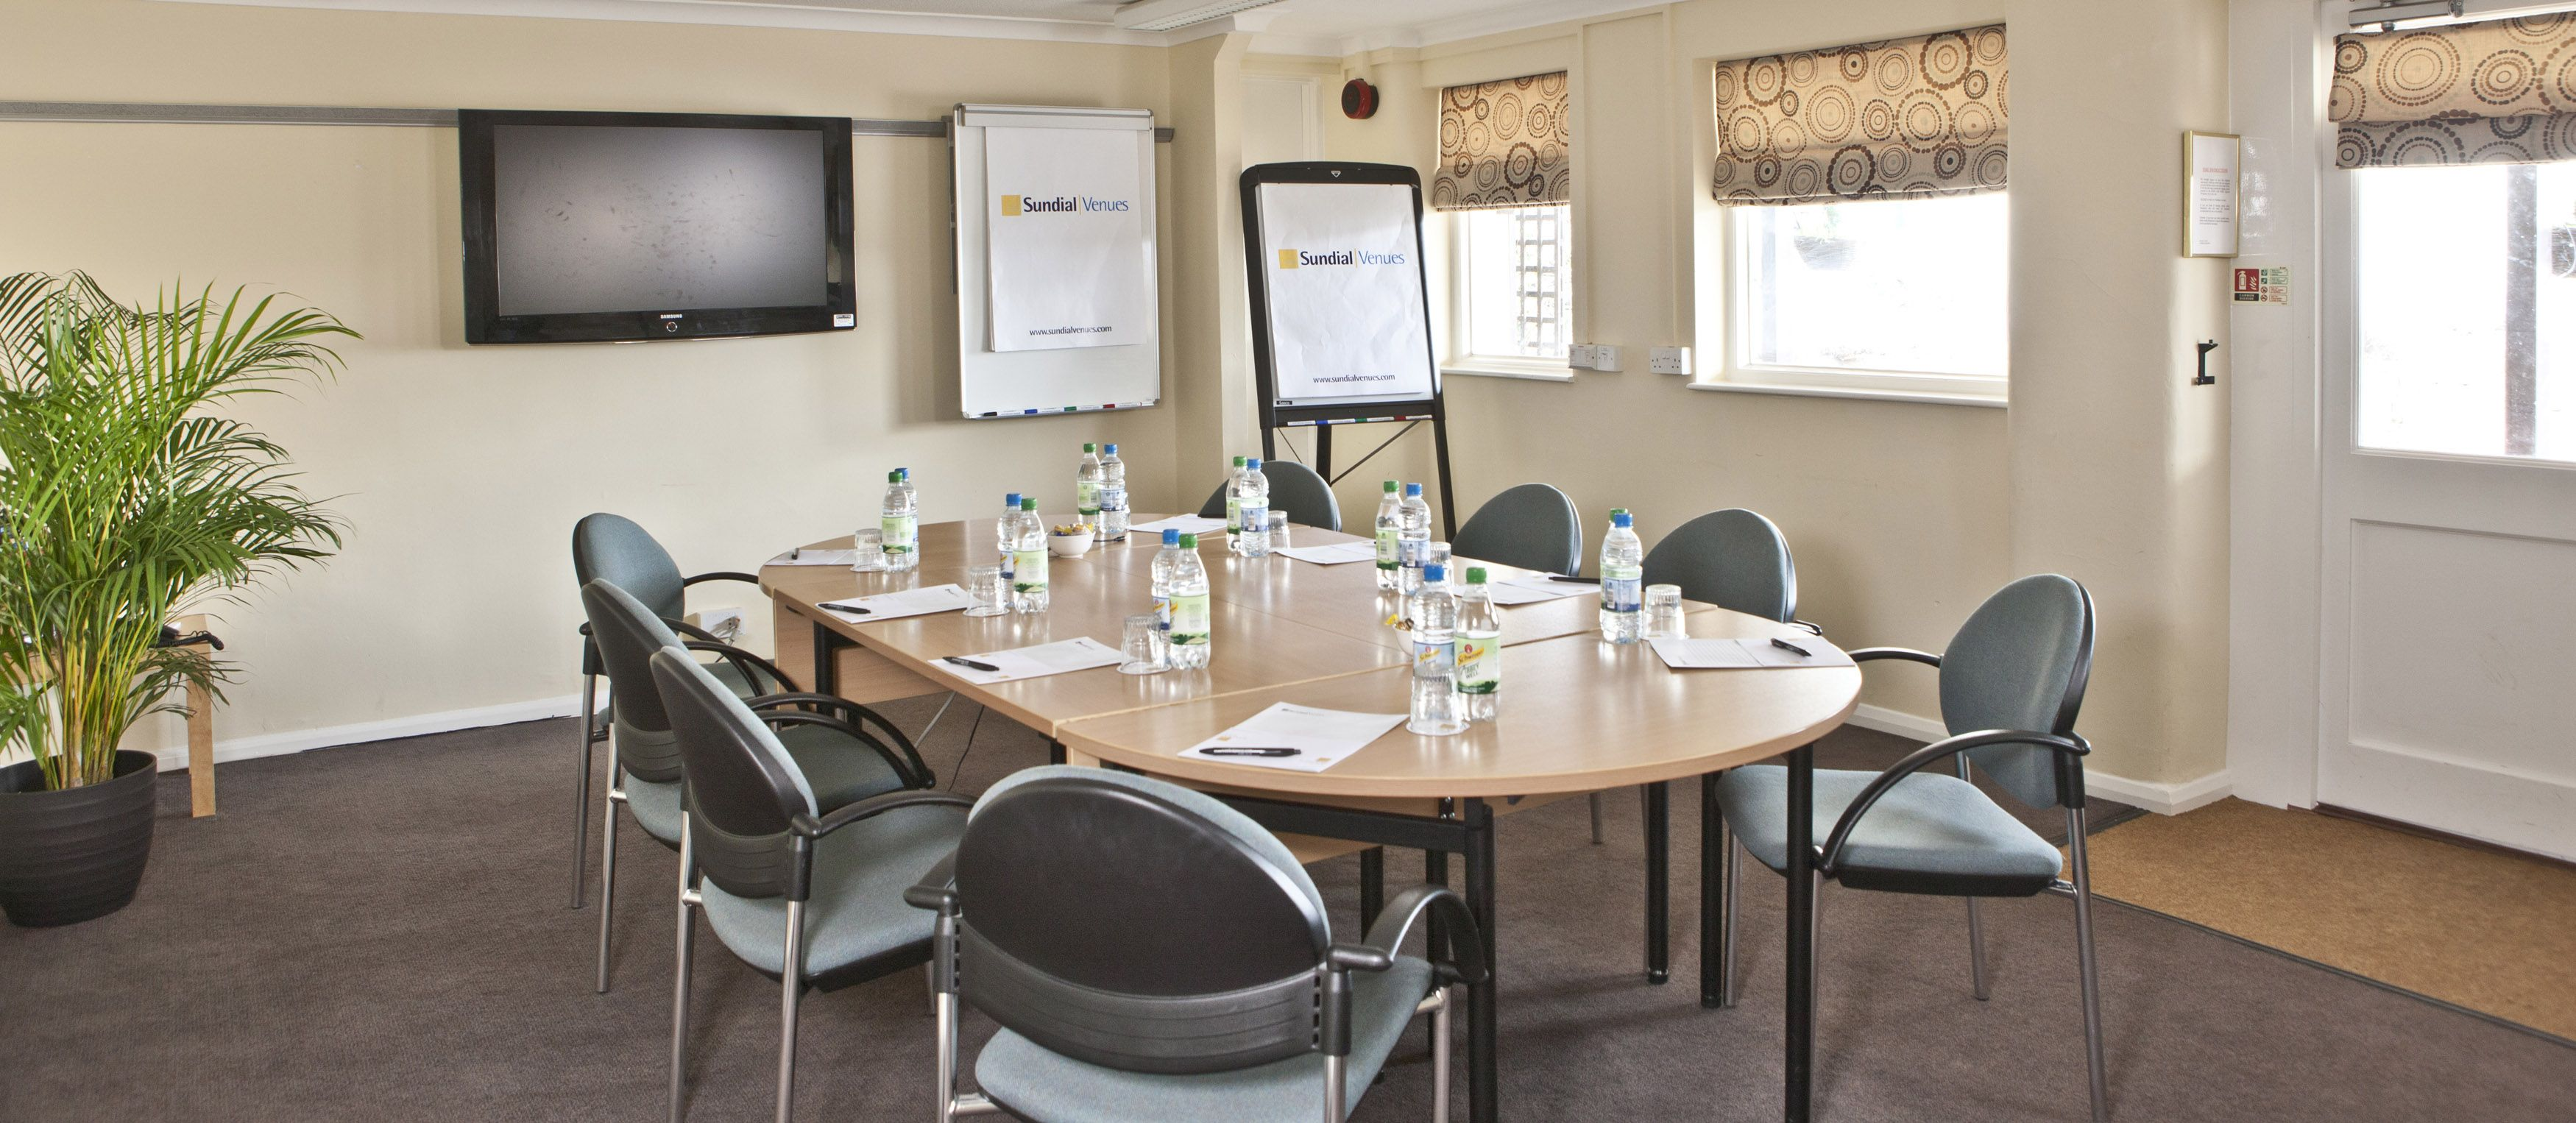 Conference Room Decorating Interior Designs Affordable Office Meeting Room With White